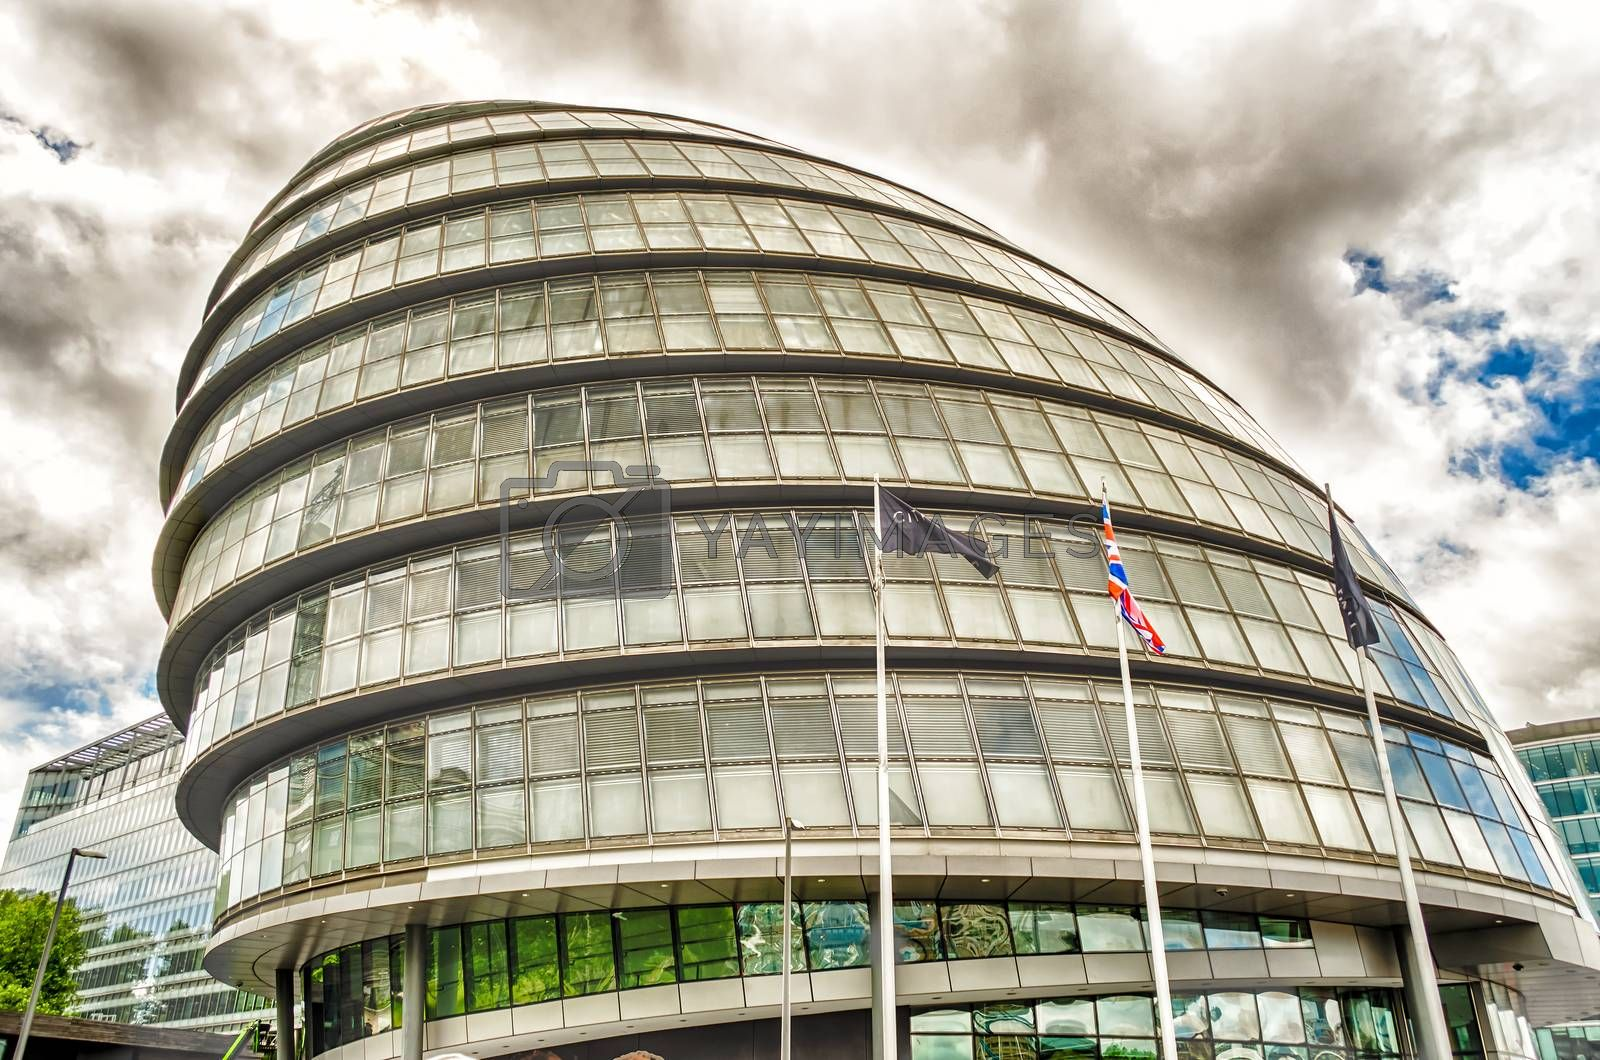 LONDON - MAY 29: London City Hall Building, on May 29, 2015. It was designed by Norman Foster and opened in July 2002 as the headquarters of the Greater London Authority